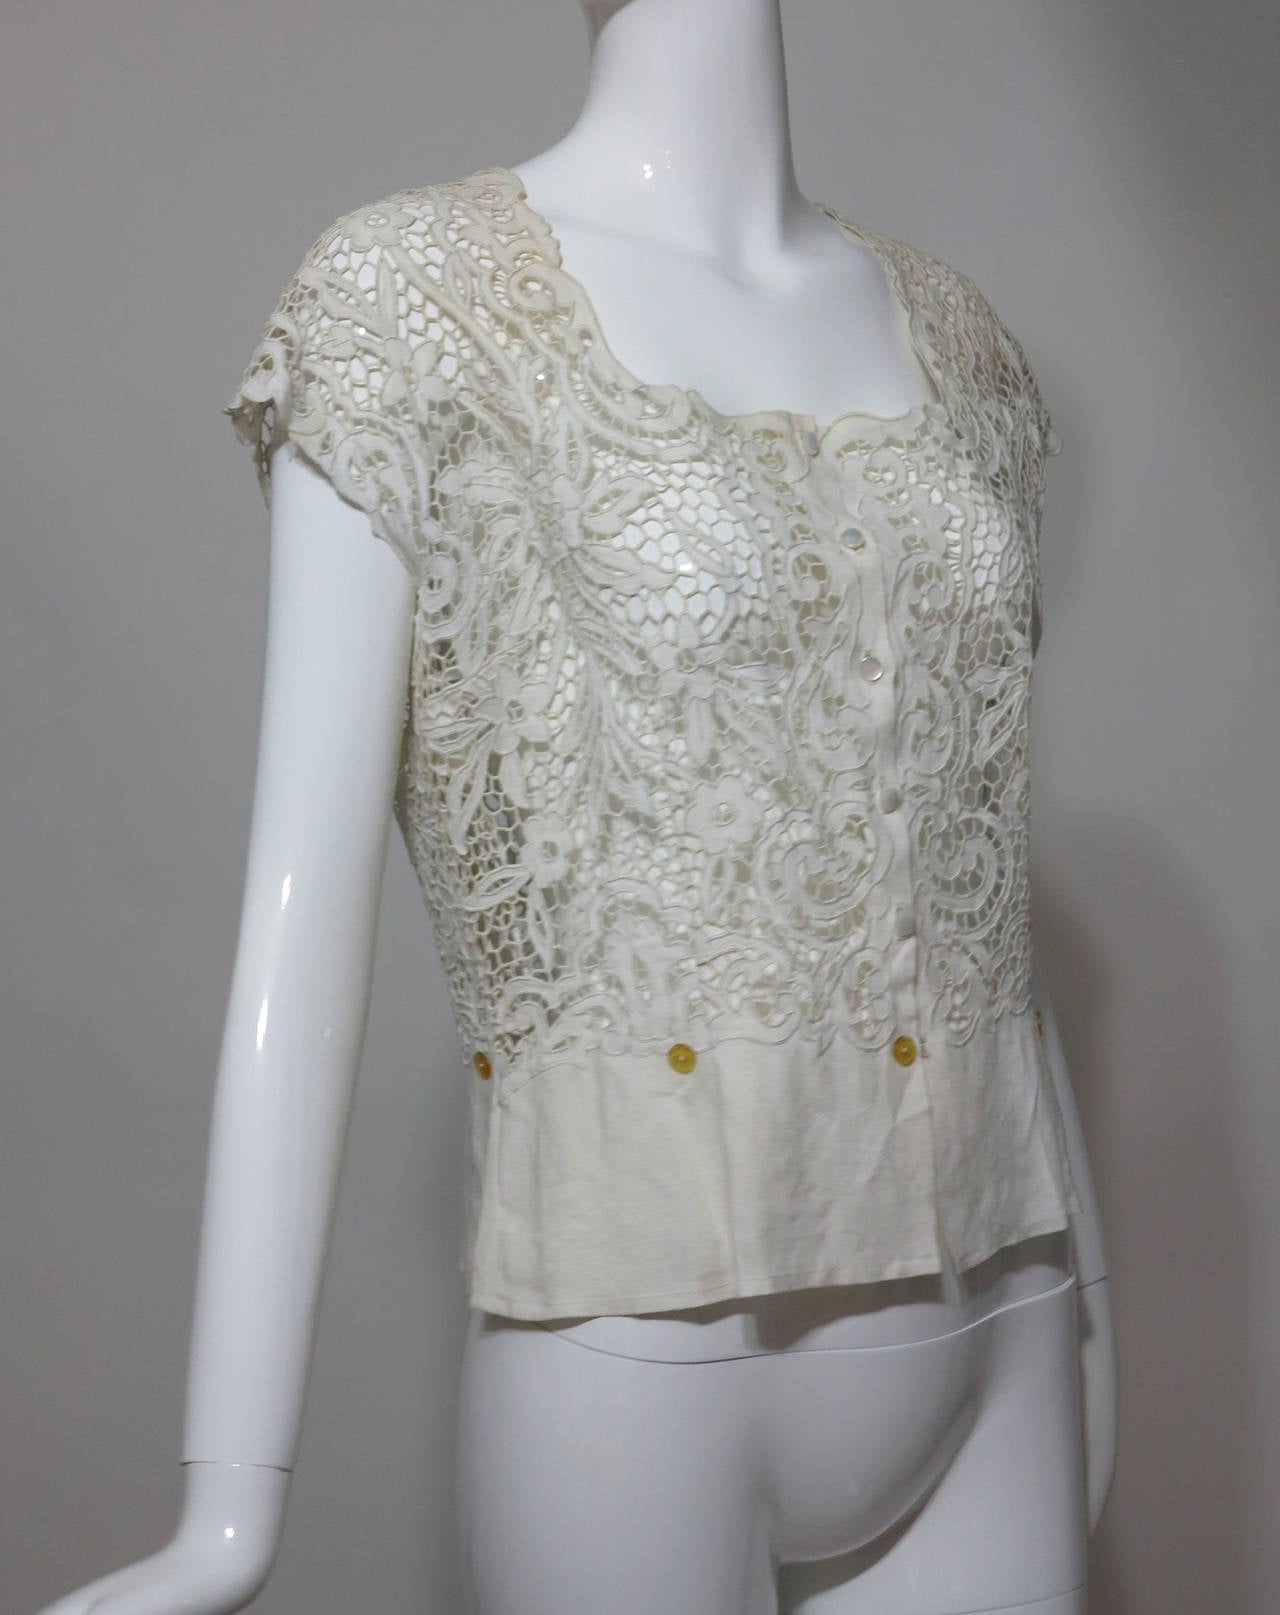 Madeira hand made cut work embroidered lace blouse in off white from the 1950s...This blouse is completely embroidered by hand using a buttonhole stitch outlining each opening cut in the fabric, the fabric is medium weight linen...This beautiful